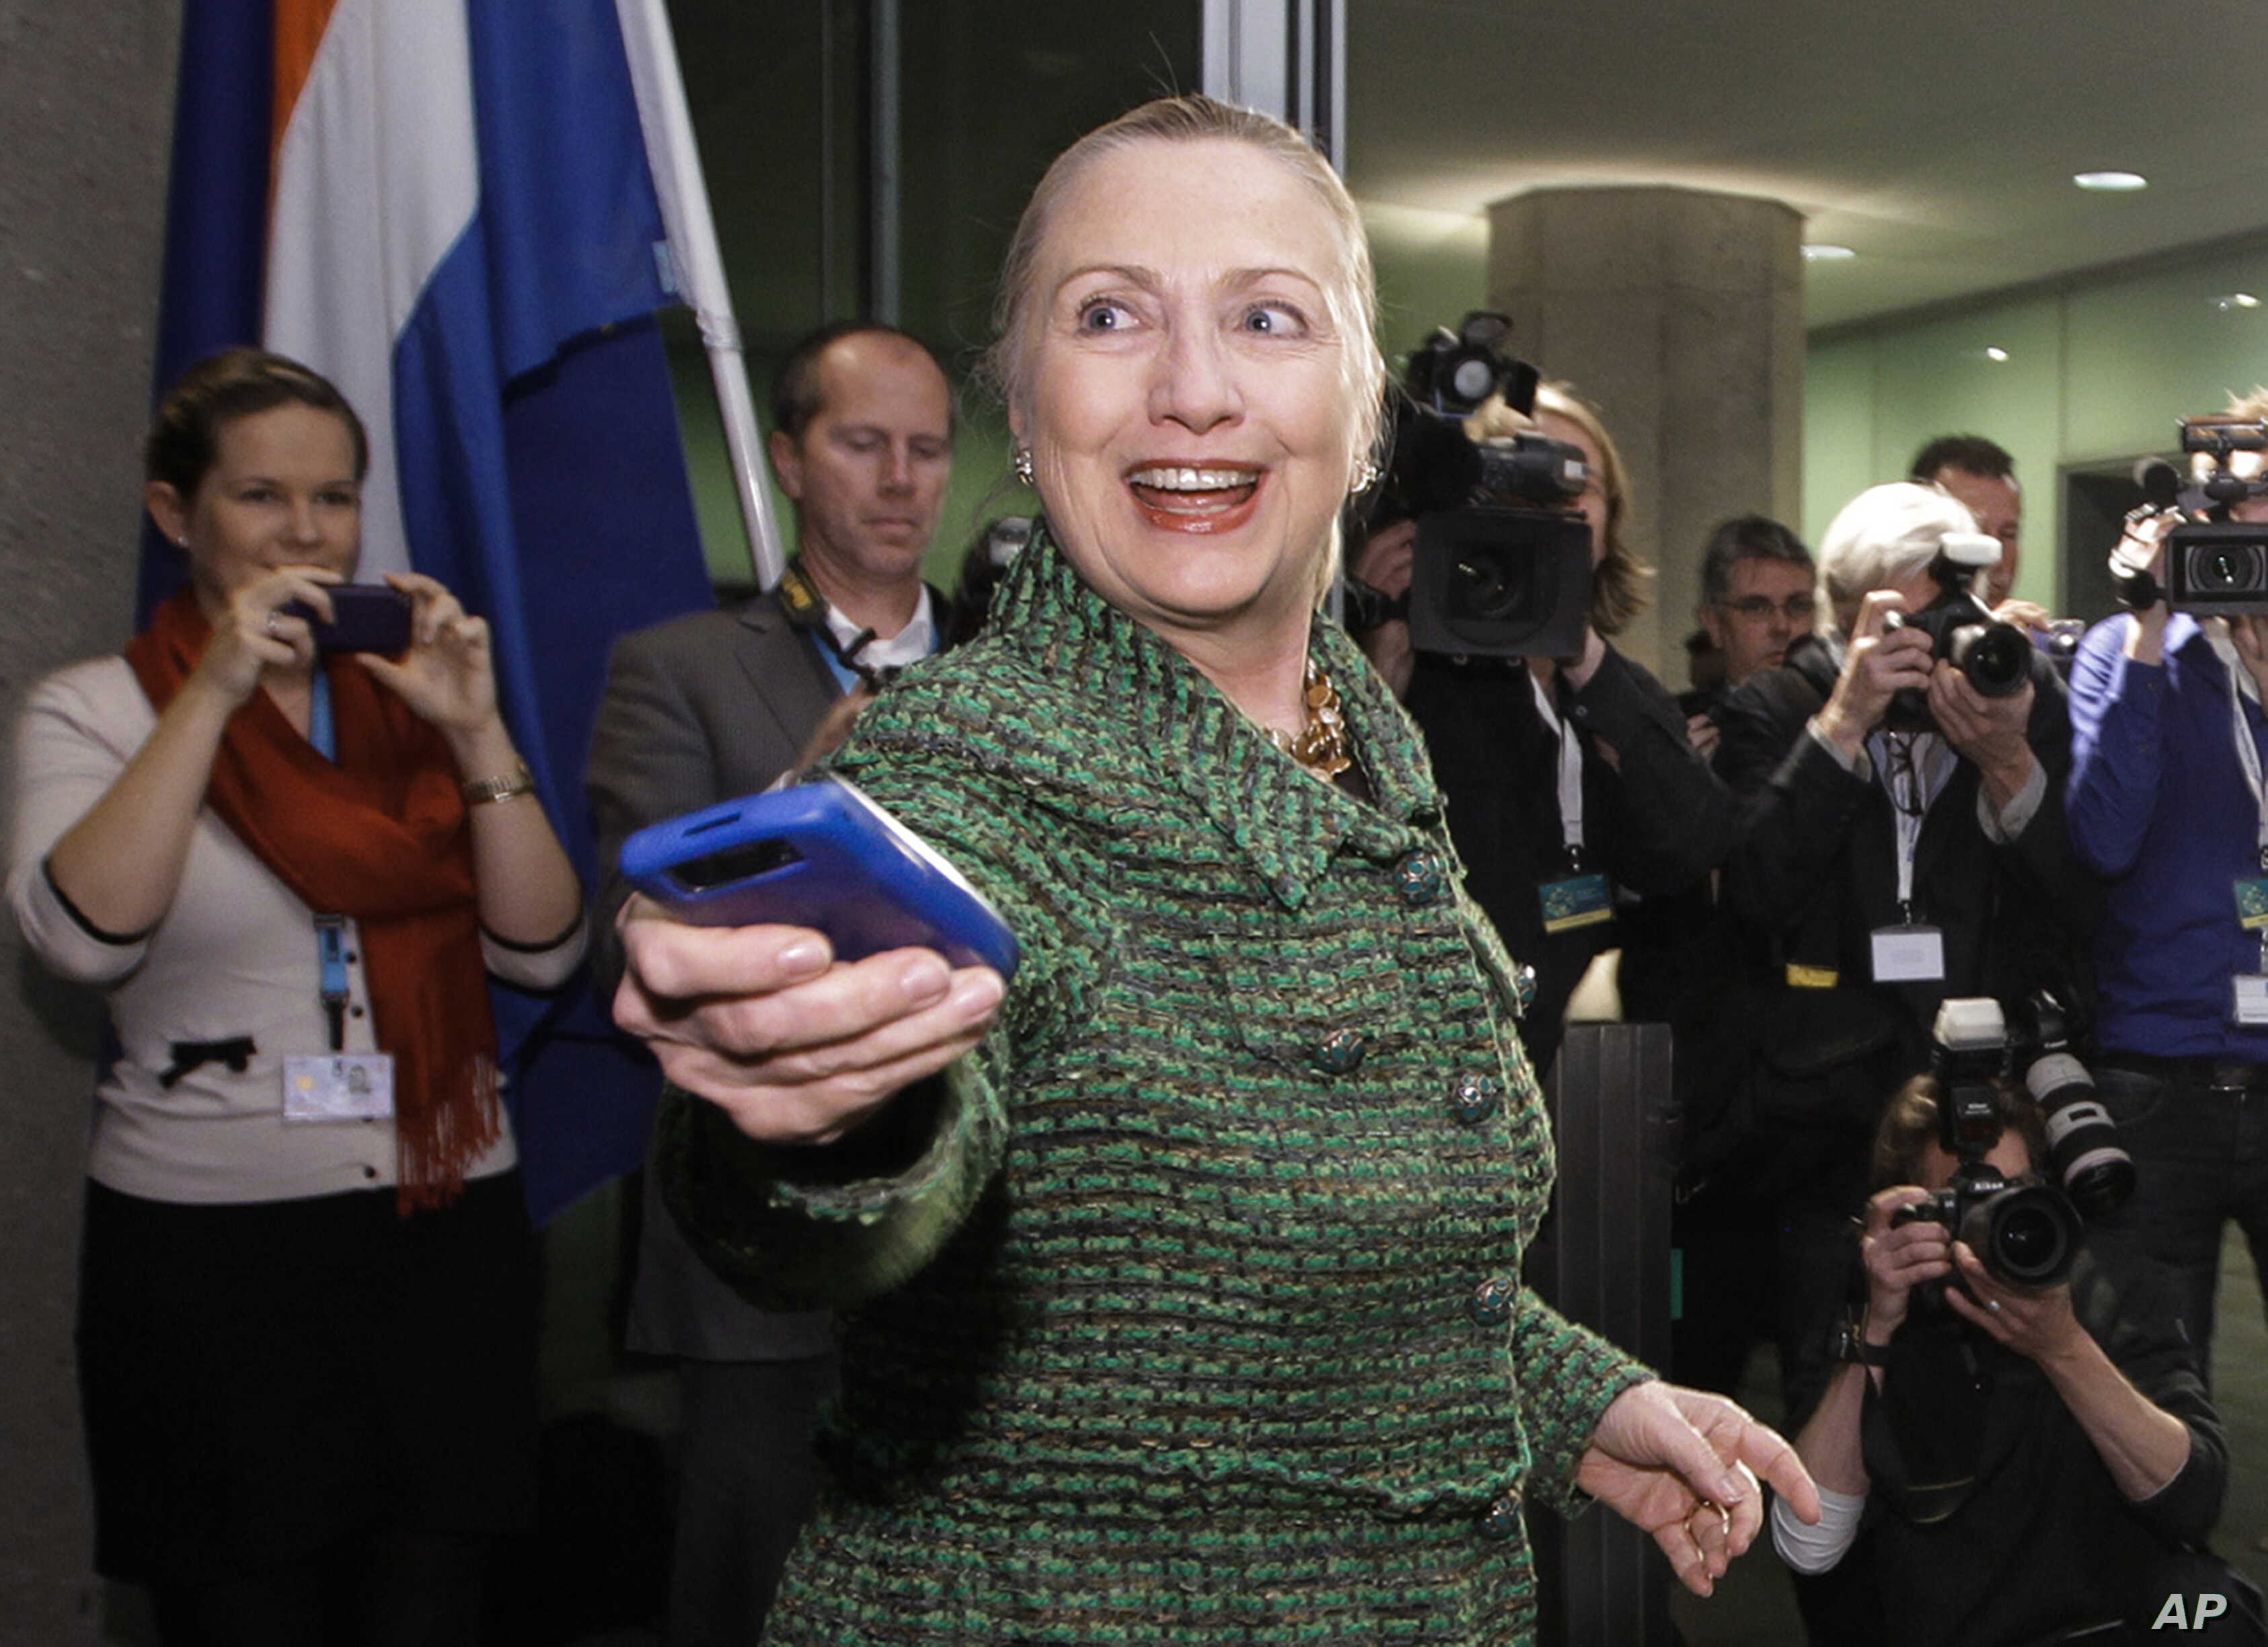 FILE -  Then-U.S. Secretary of State Hillary Clinton hands off her mobile phone after arriving to meet with Dutch Foreign Minister Uri Rosenthal at the Ministry of Foreign Affairs in The Hague, Netherlands, Dec. 8, 2011.